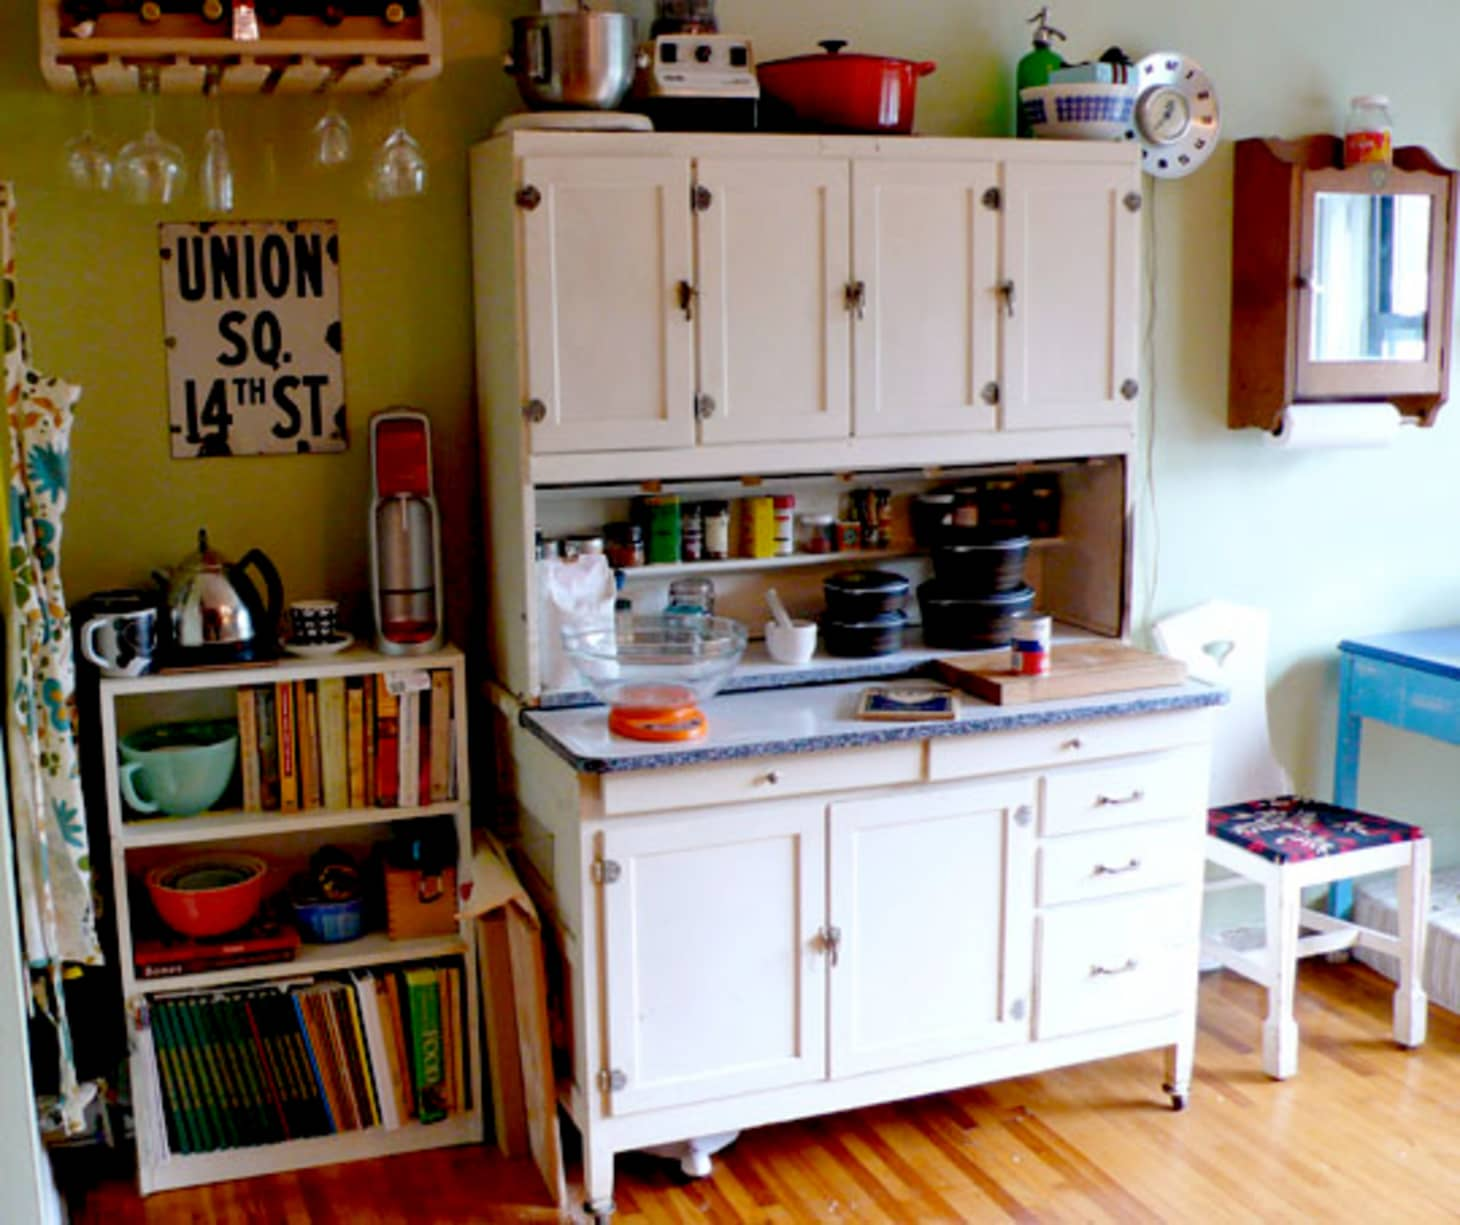 Kitchen Cabinets In Brooklyn Ny: Kitchen Tour: Harry And Taylor Of Brooklyn Kitchen